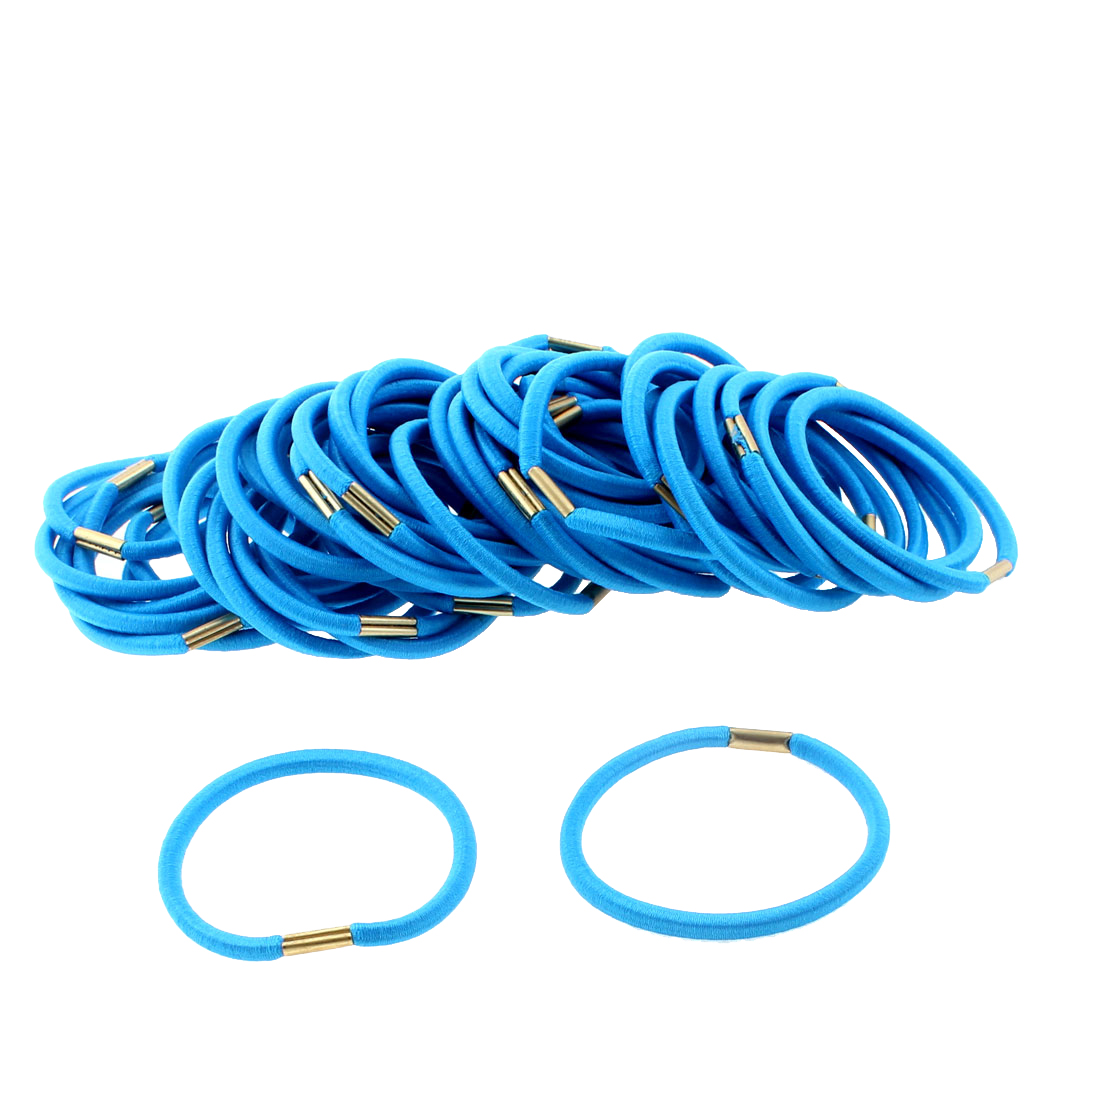 Women DIY Craft Elastic Hair Tie Rope Ring Band Hairband Ponytail Holder Blue 50pcs